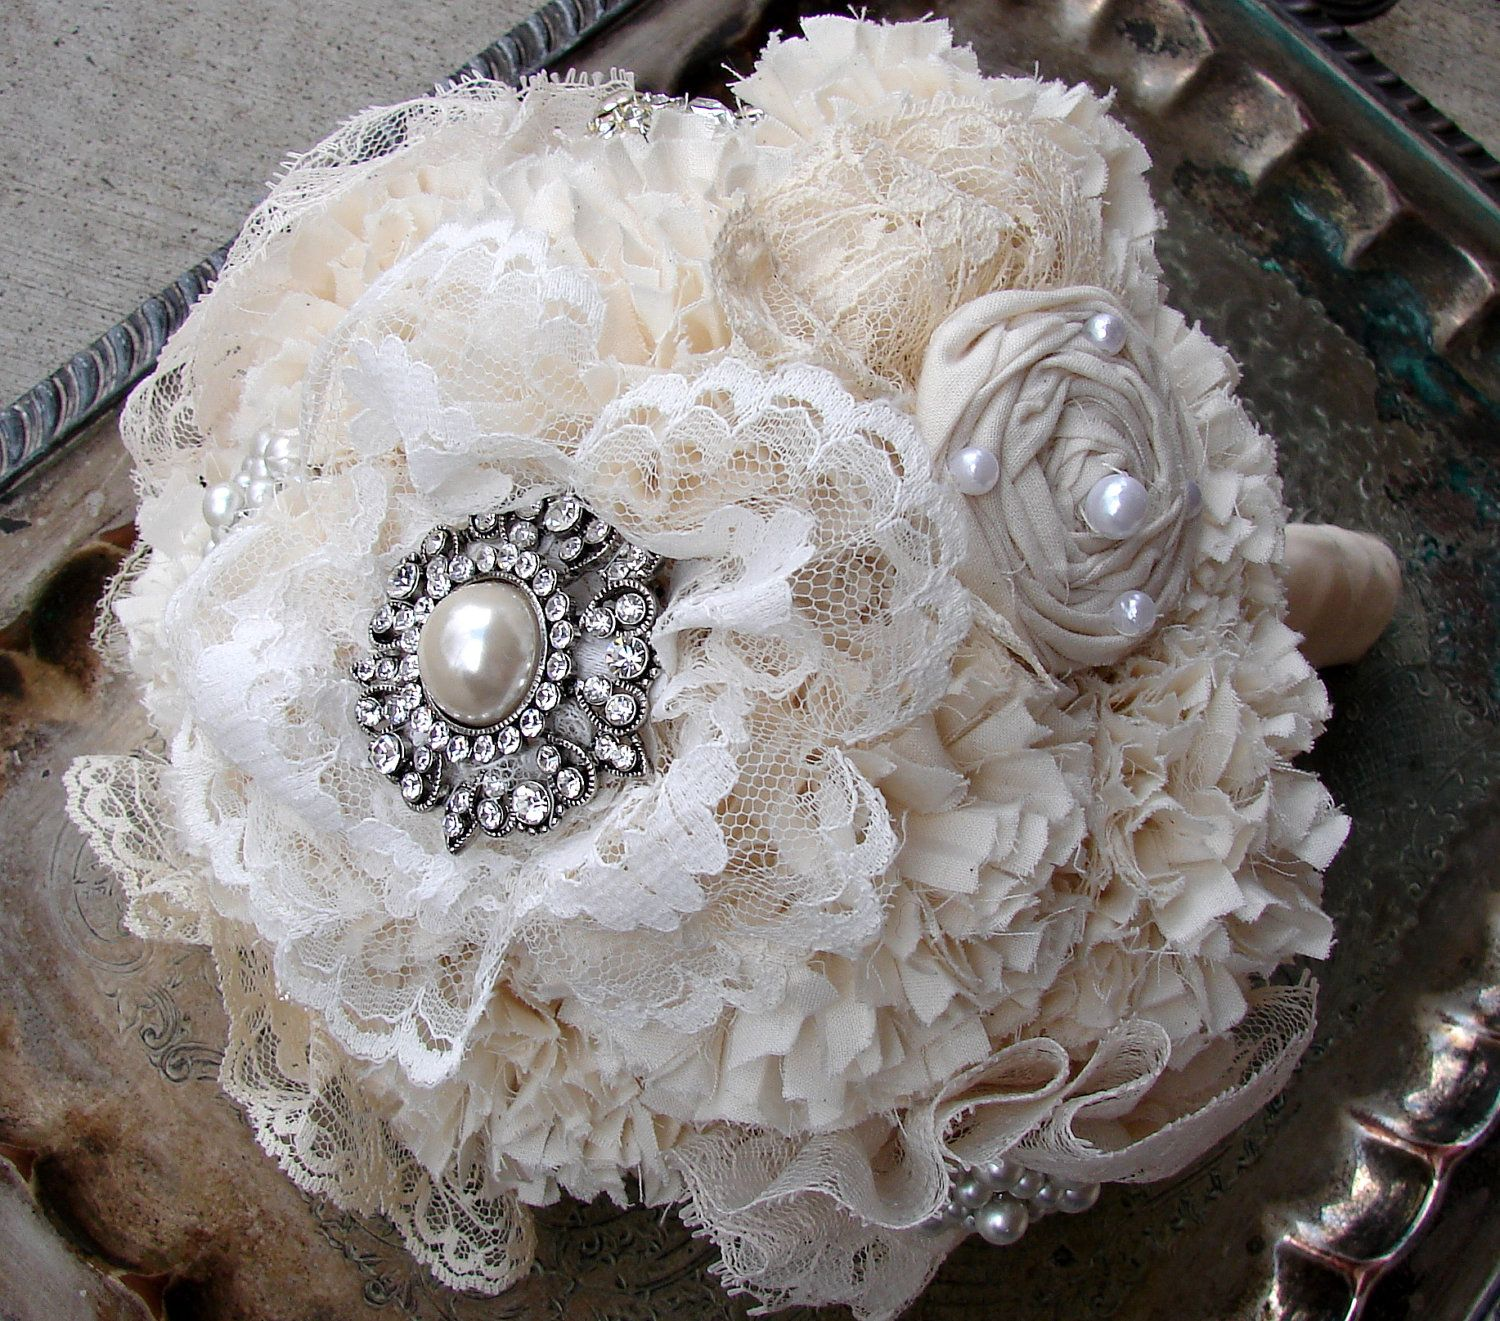 Fabric Flower Bouquet With Rhinestone Brooches And Lace Weddings